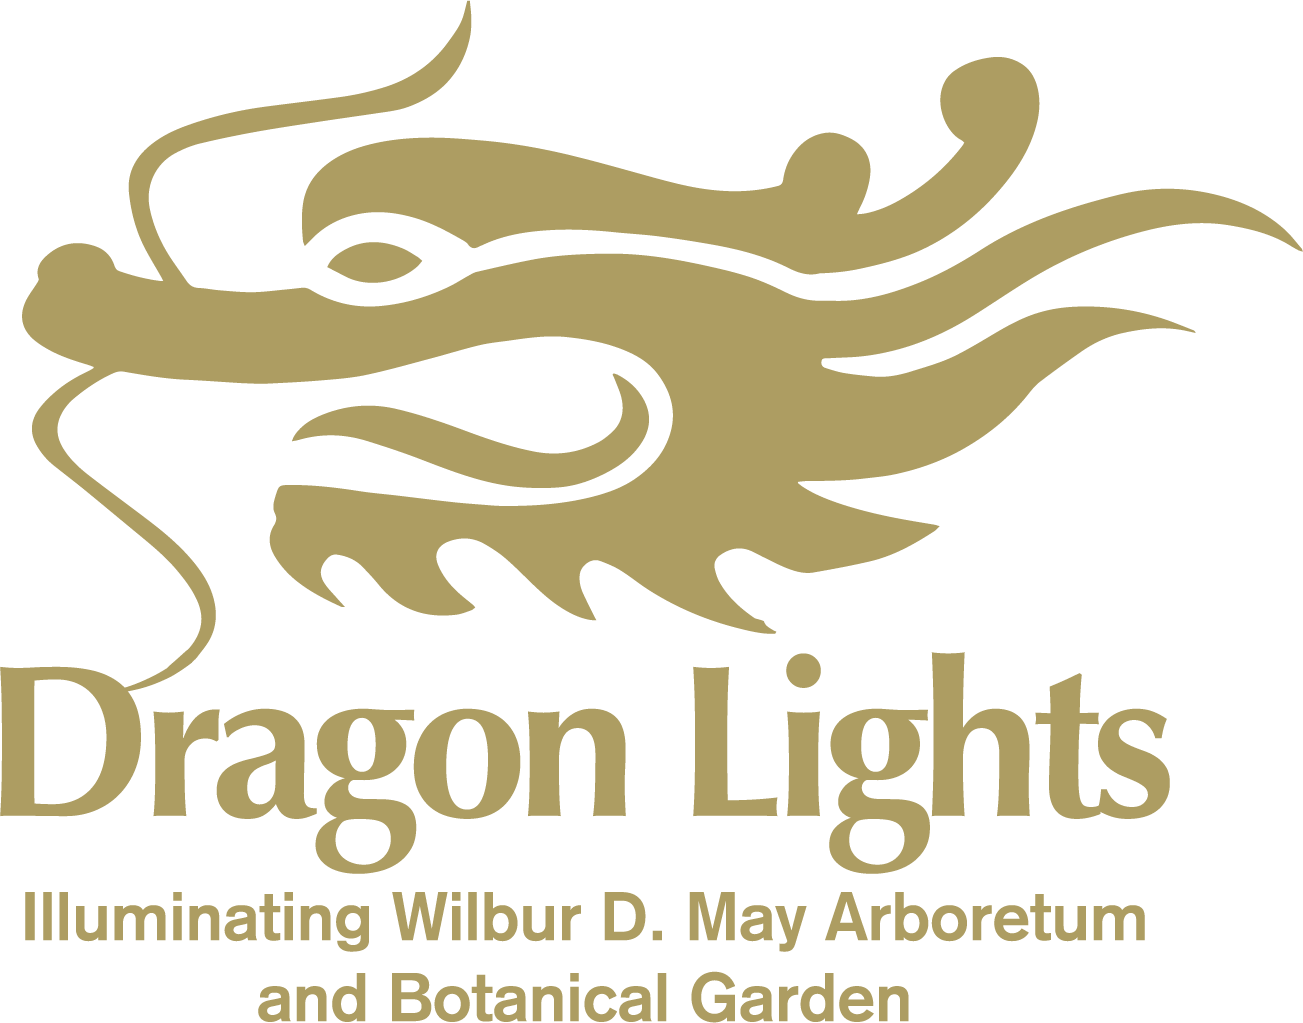 DRAGON LIGHTS -Wilbur D. May Arboretum and Botanical Garden Illuminated – June 30 to August 5